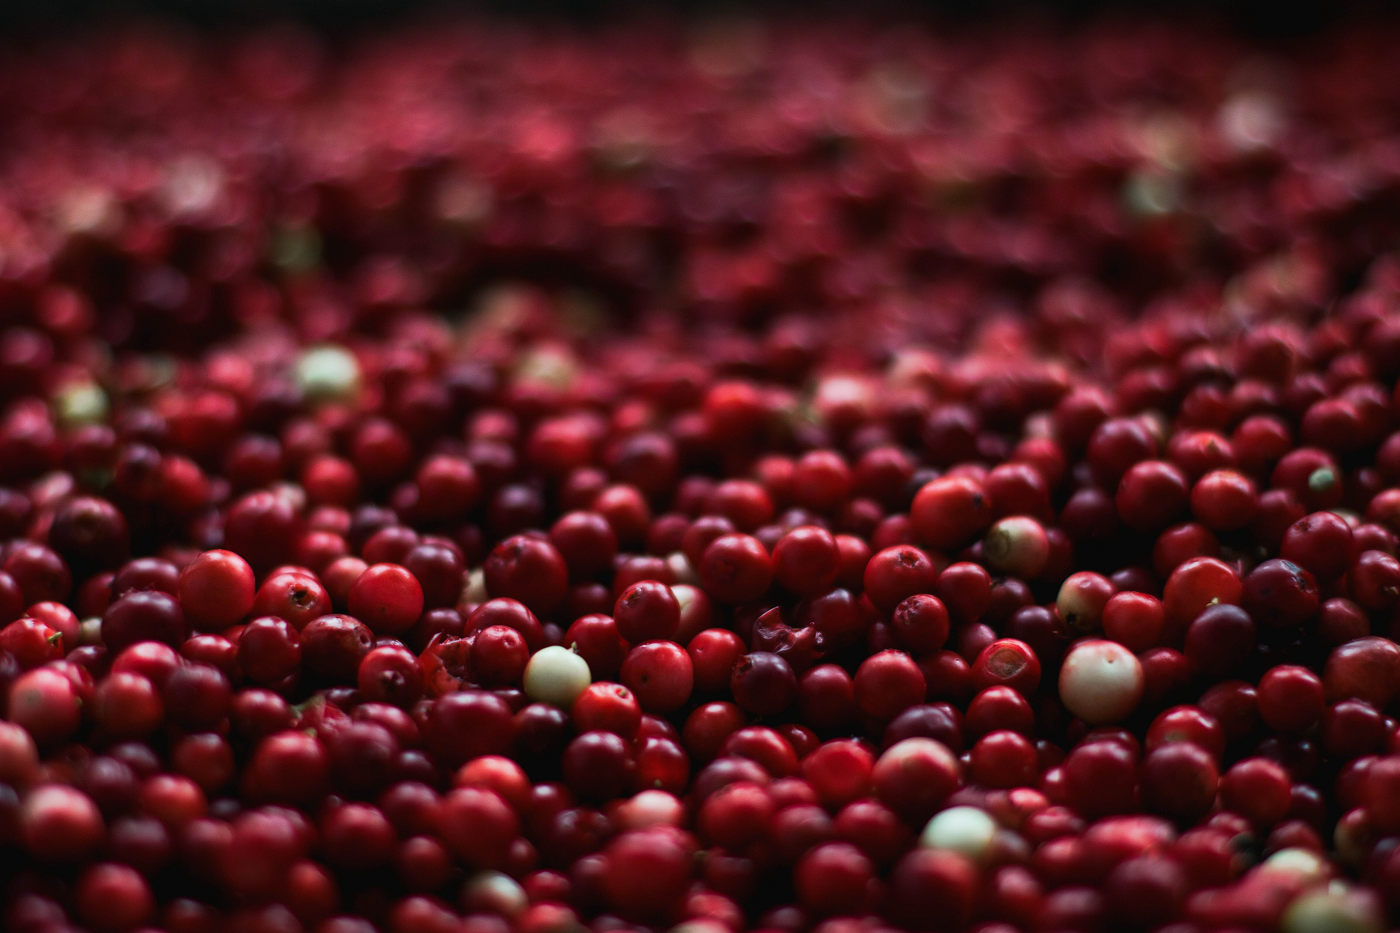 Curbing your appetite (and losing weight) with cranberries